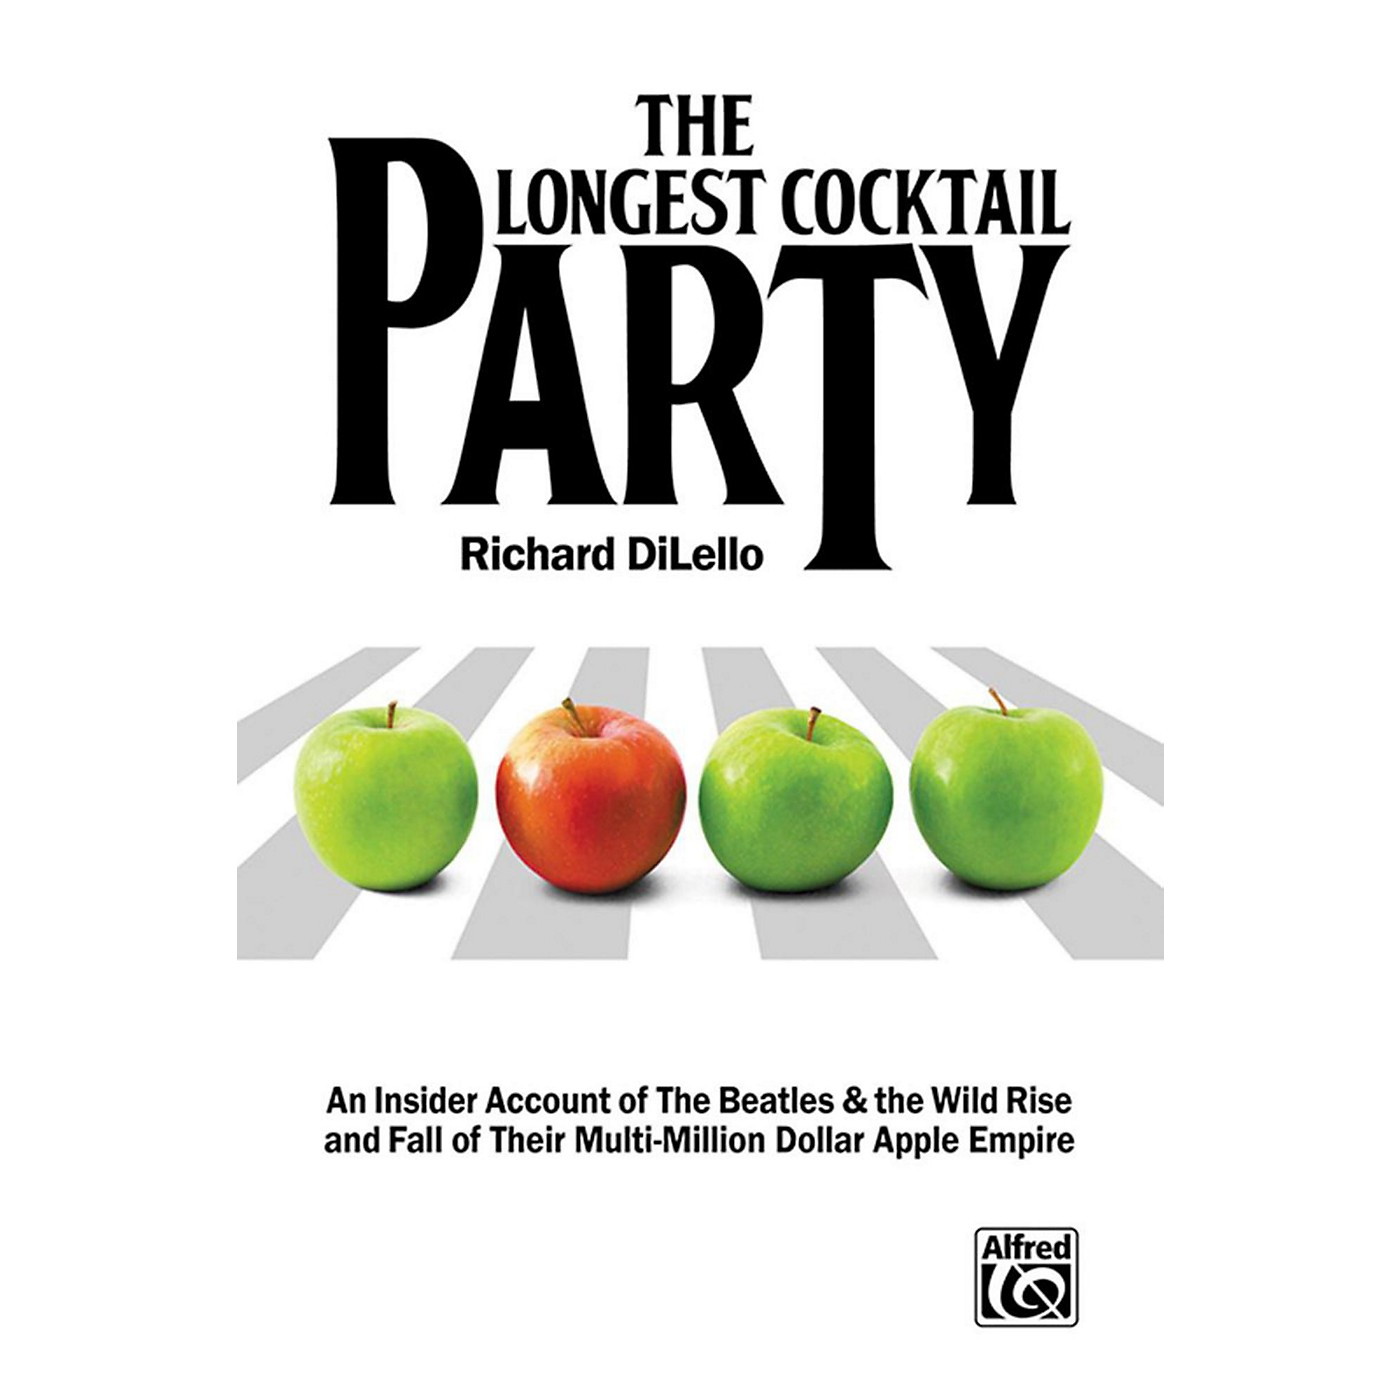 Alfred The Longest Cocktail Party An Insider Account of The Beatles & the Wild Rise & Fall of Their Multi-Million Dollar Apple Empire Bk thumbnail